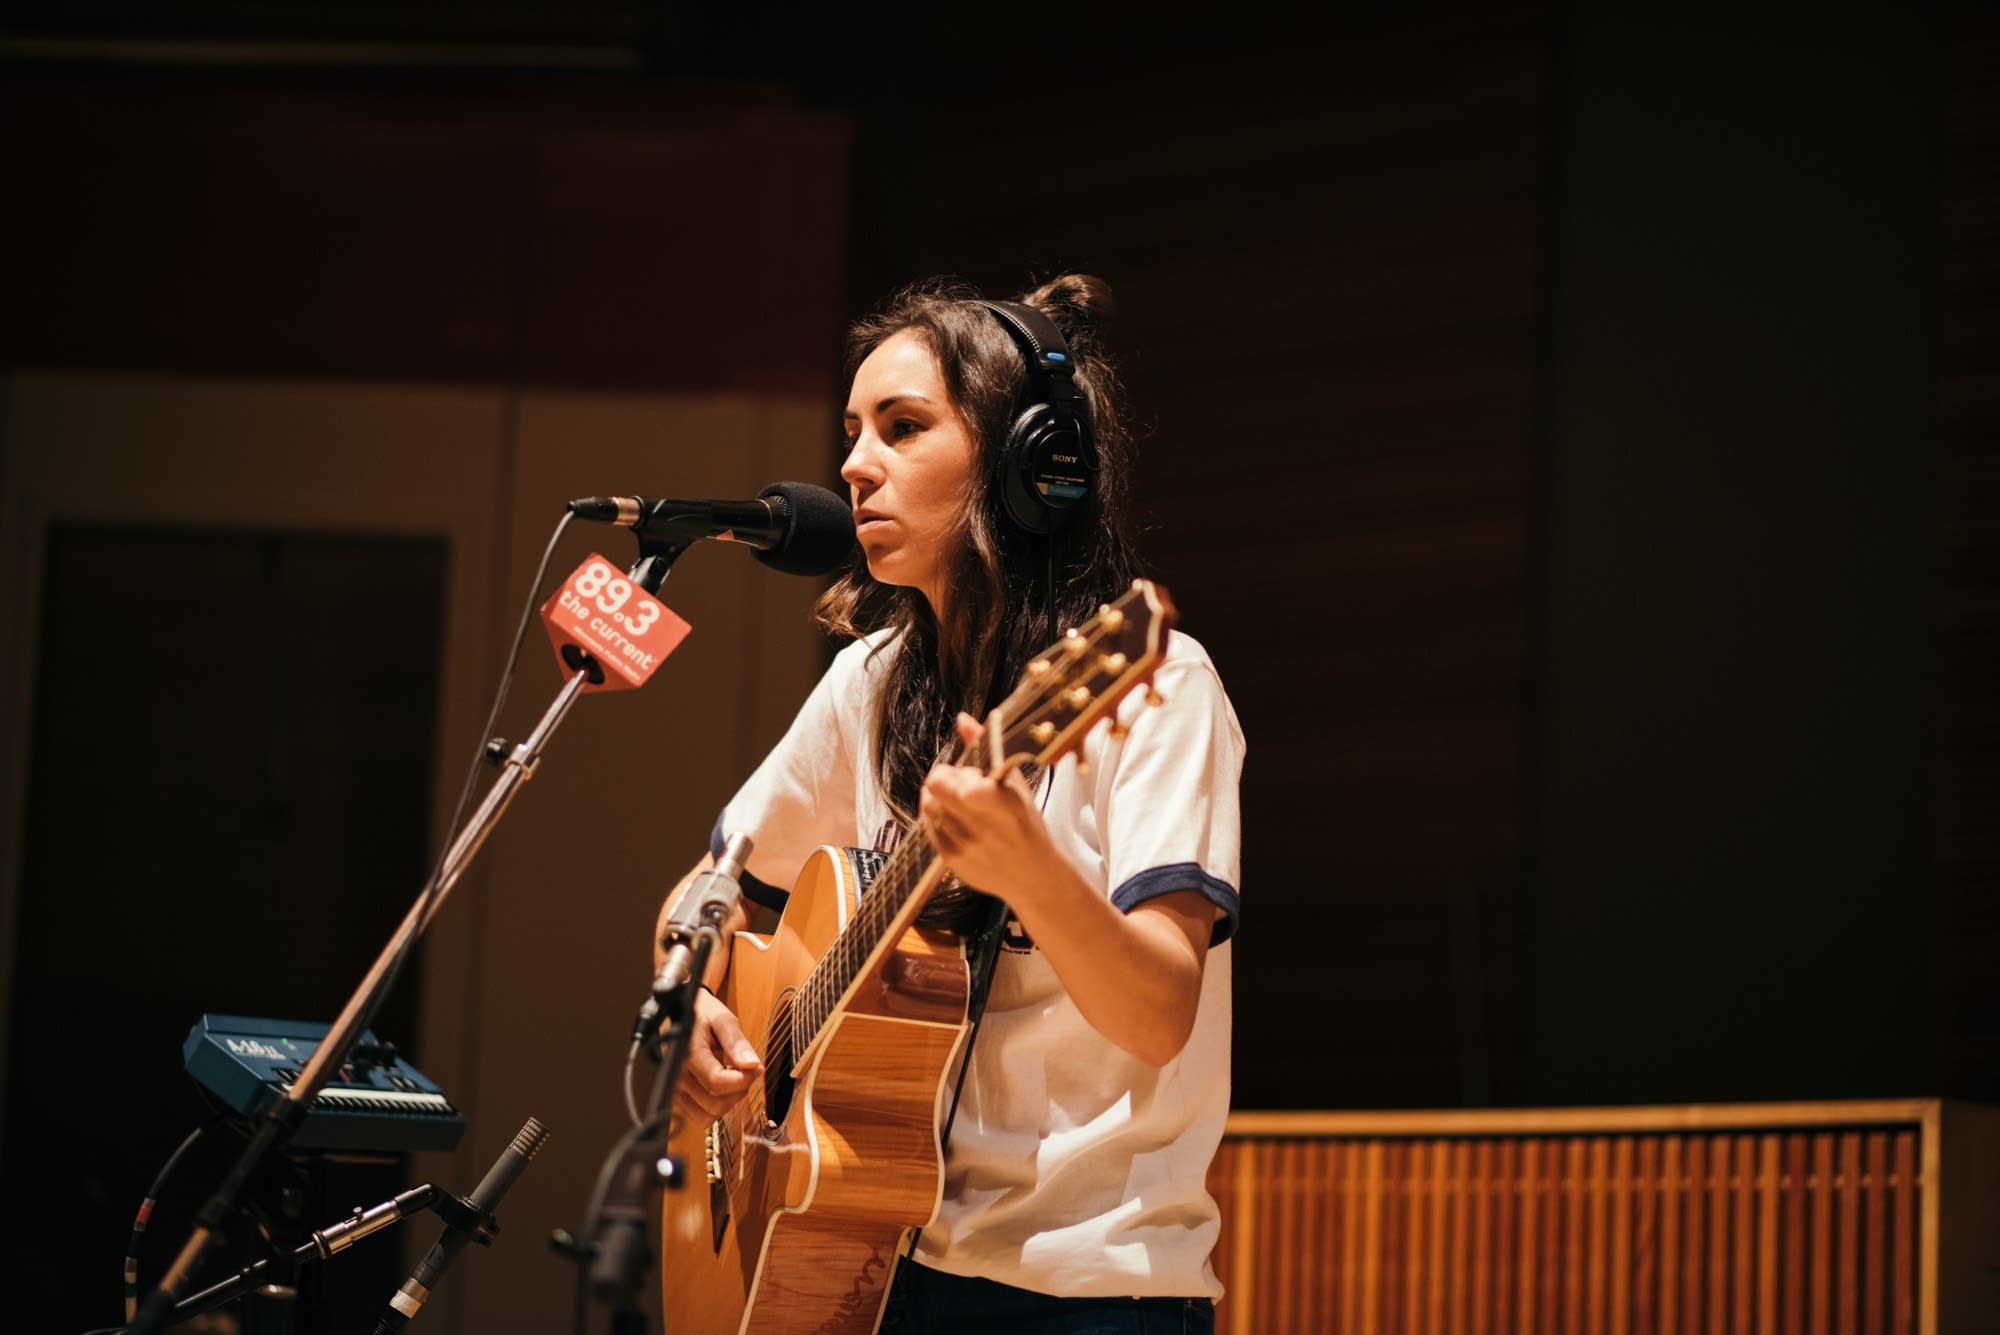 Amy Shark performs in The Current studio